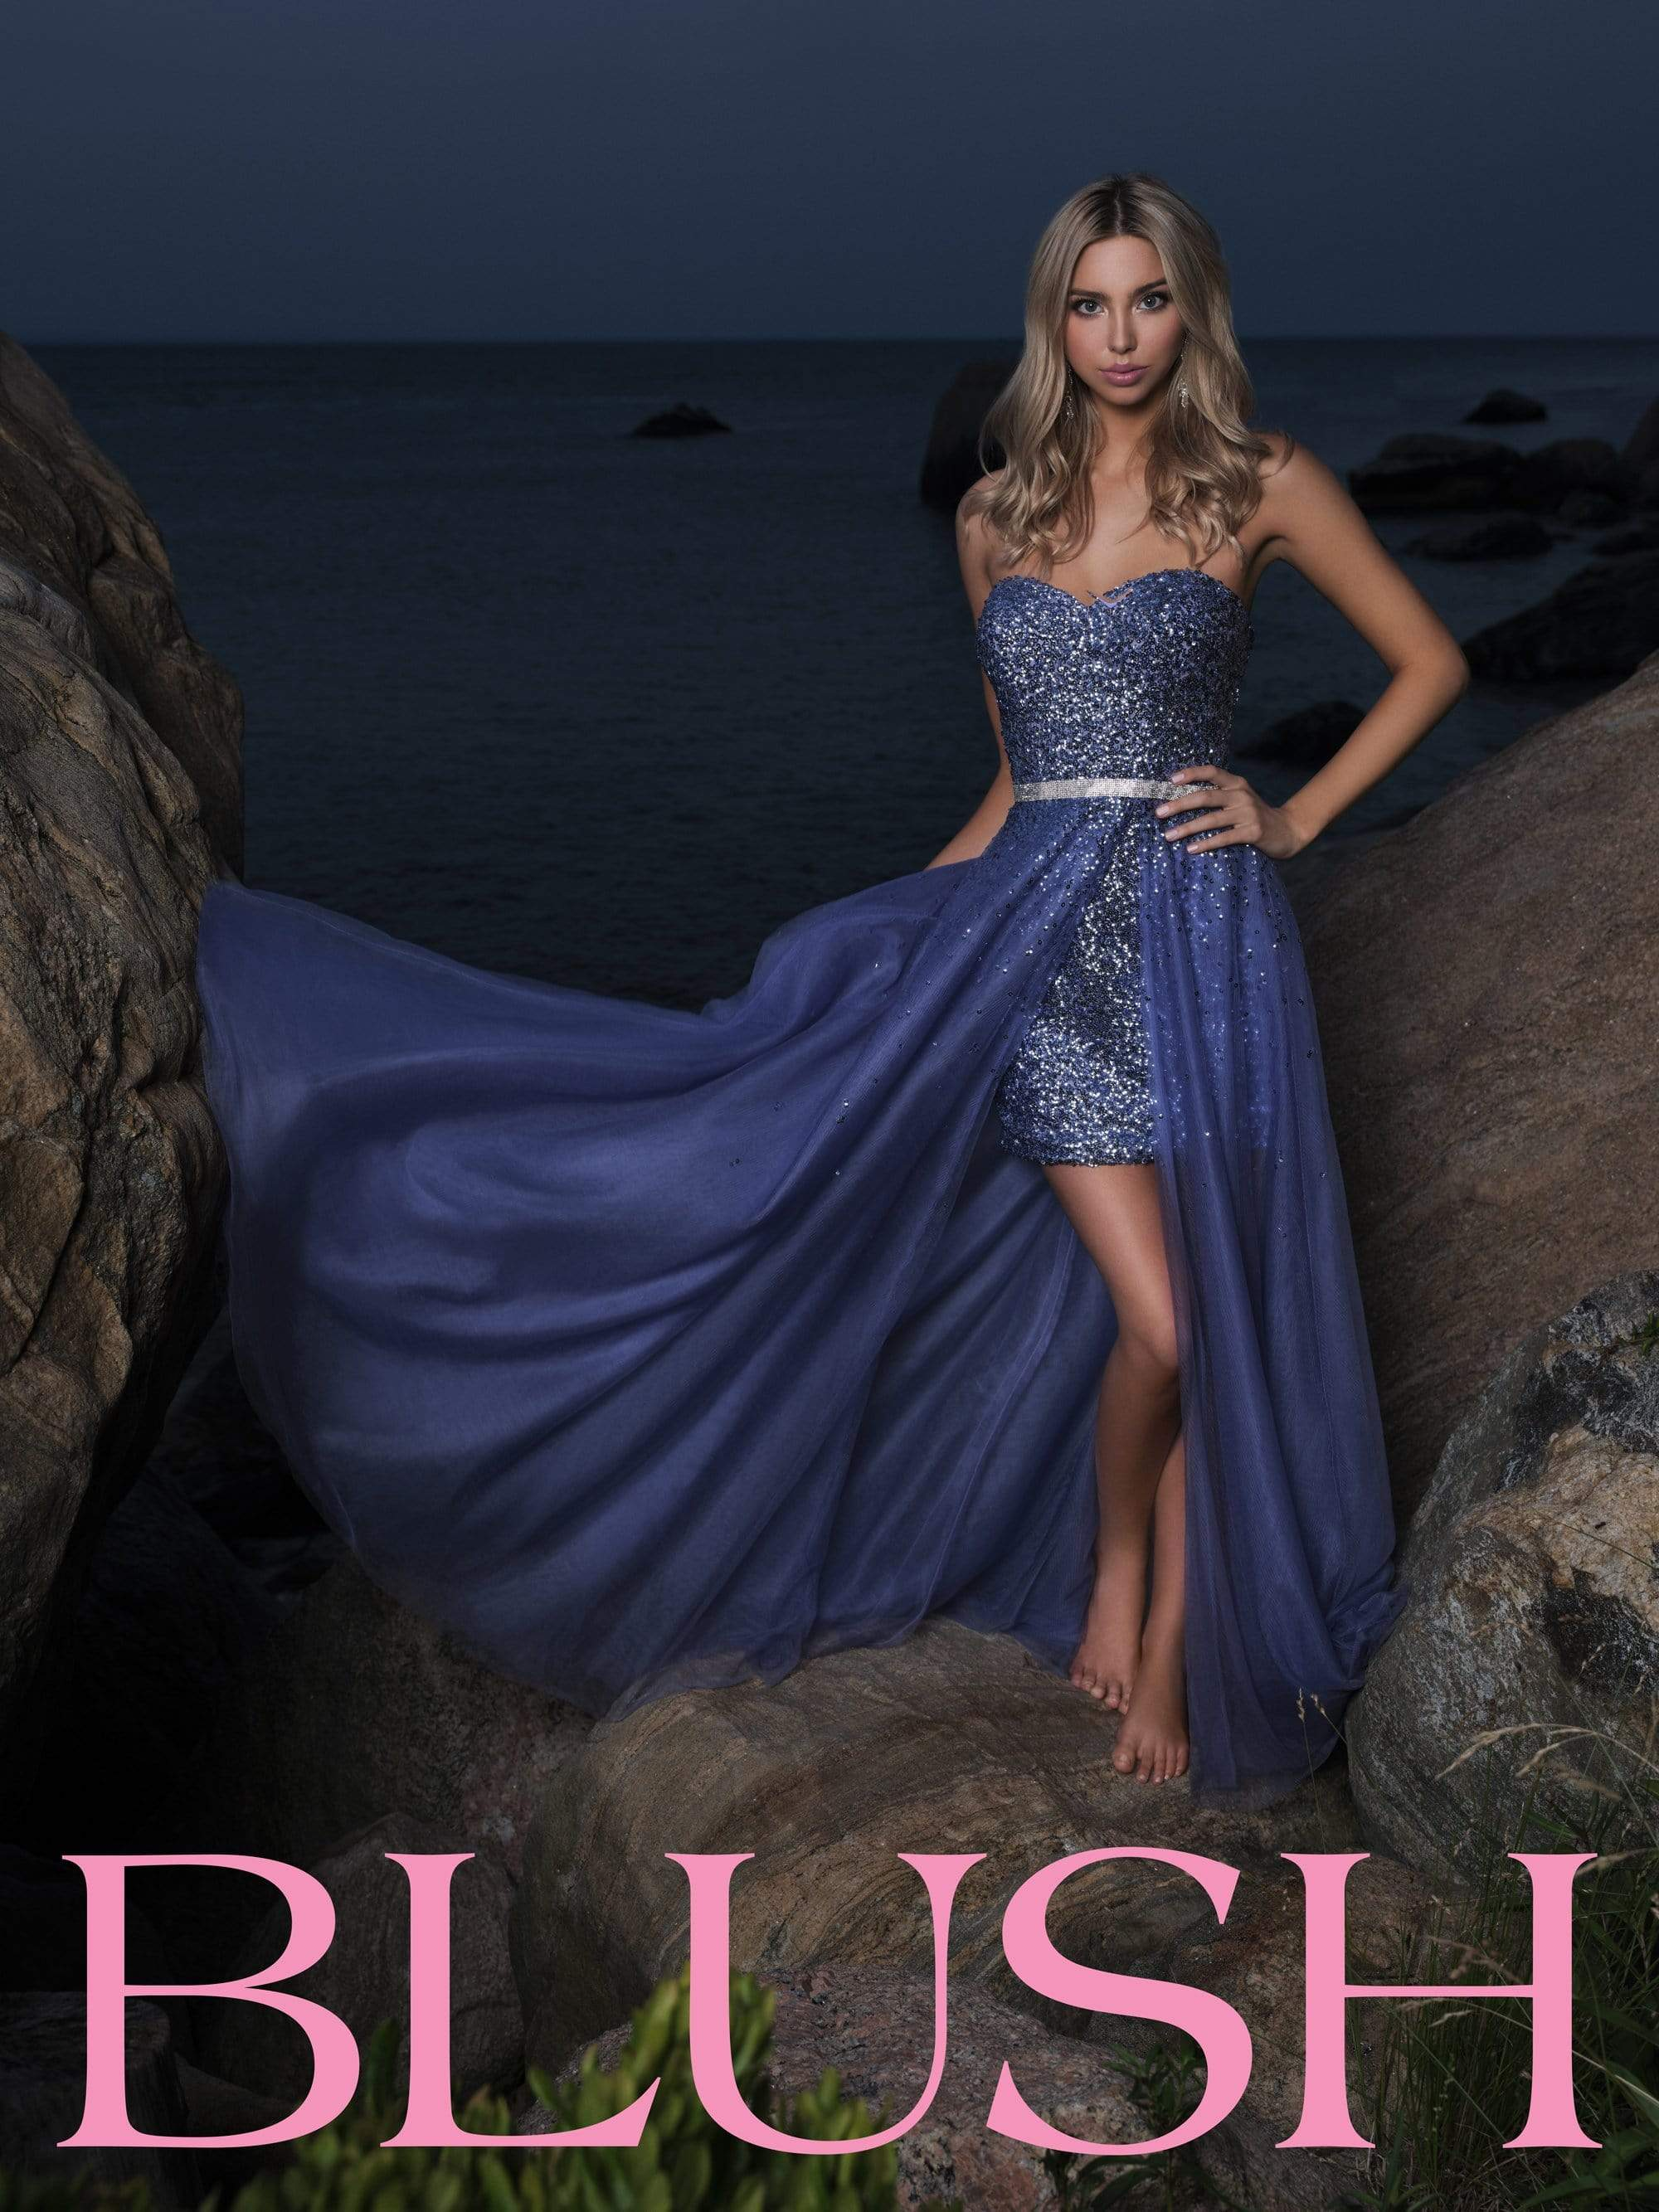 Blush by Alexia Designs - 11897 Strapless Sequin Dress with Overskirt Prom Dresses